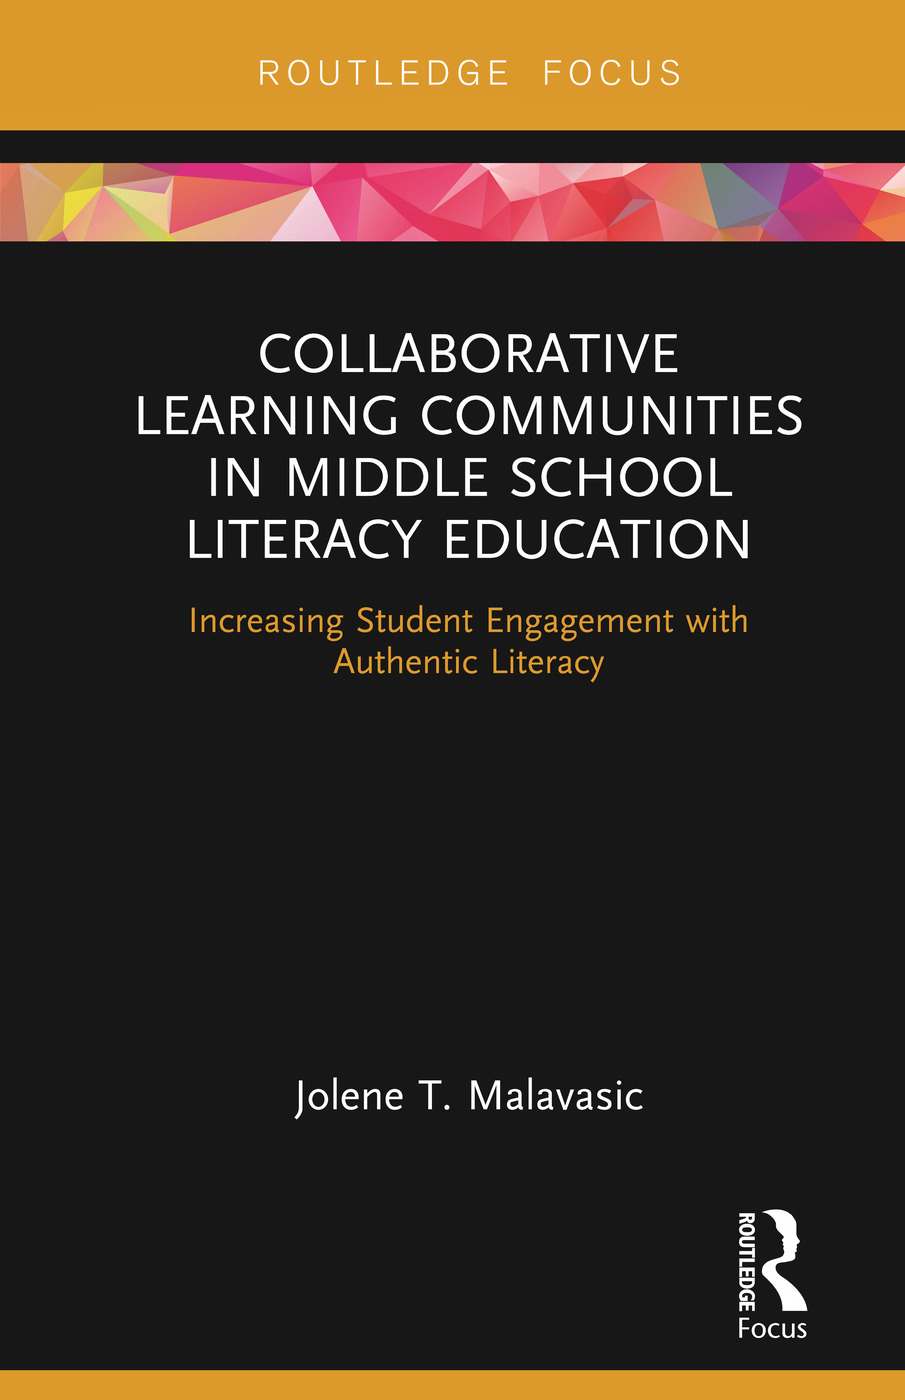 Collaborative Learning Communities in Middle School Literacy Education: Increasing Student Engagement with Authentic Literacy book cover